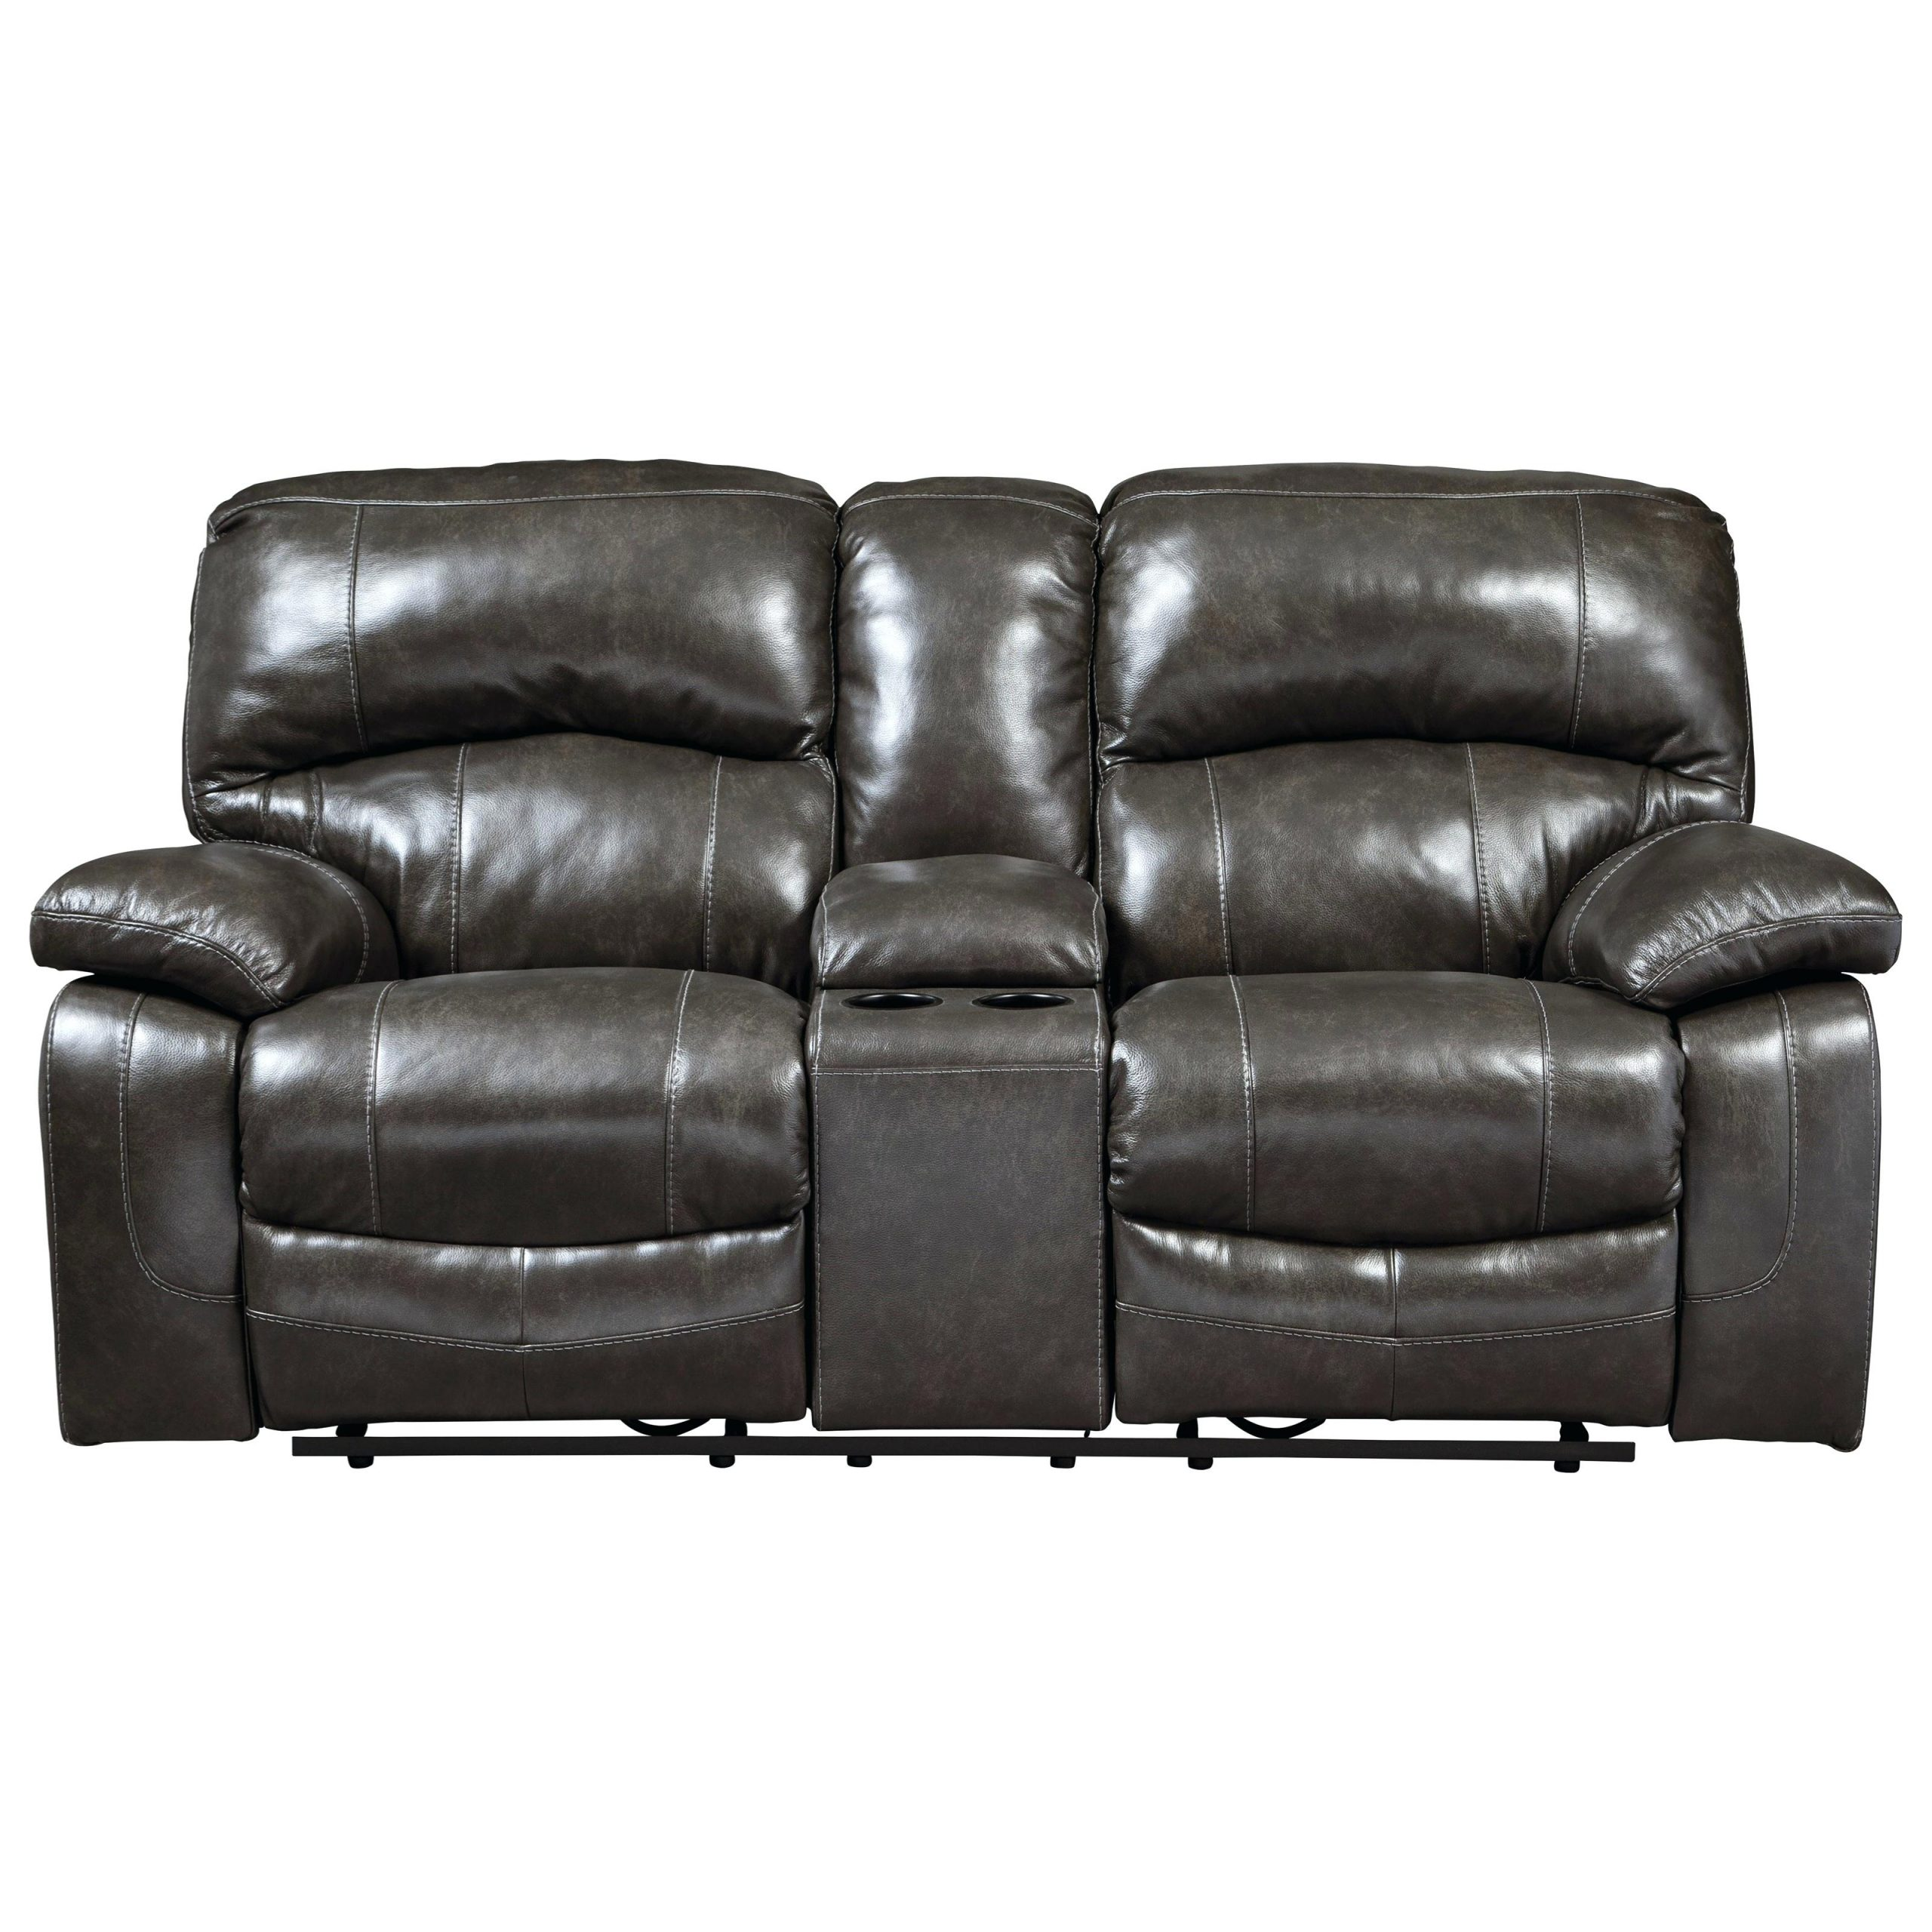 Most Recently Released Double Glider Loveseats With Regard To Damacio Power Glider Reclining Loveseat With Console Gliding (Gallery 18 of 30)